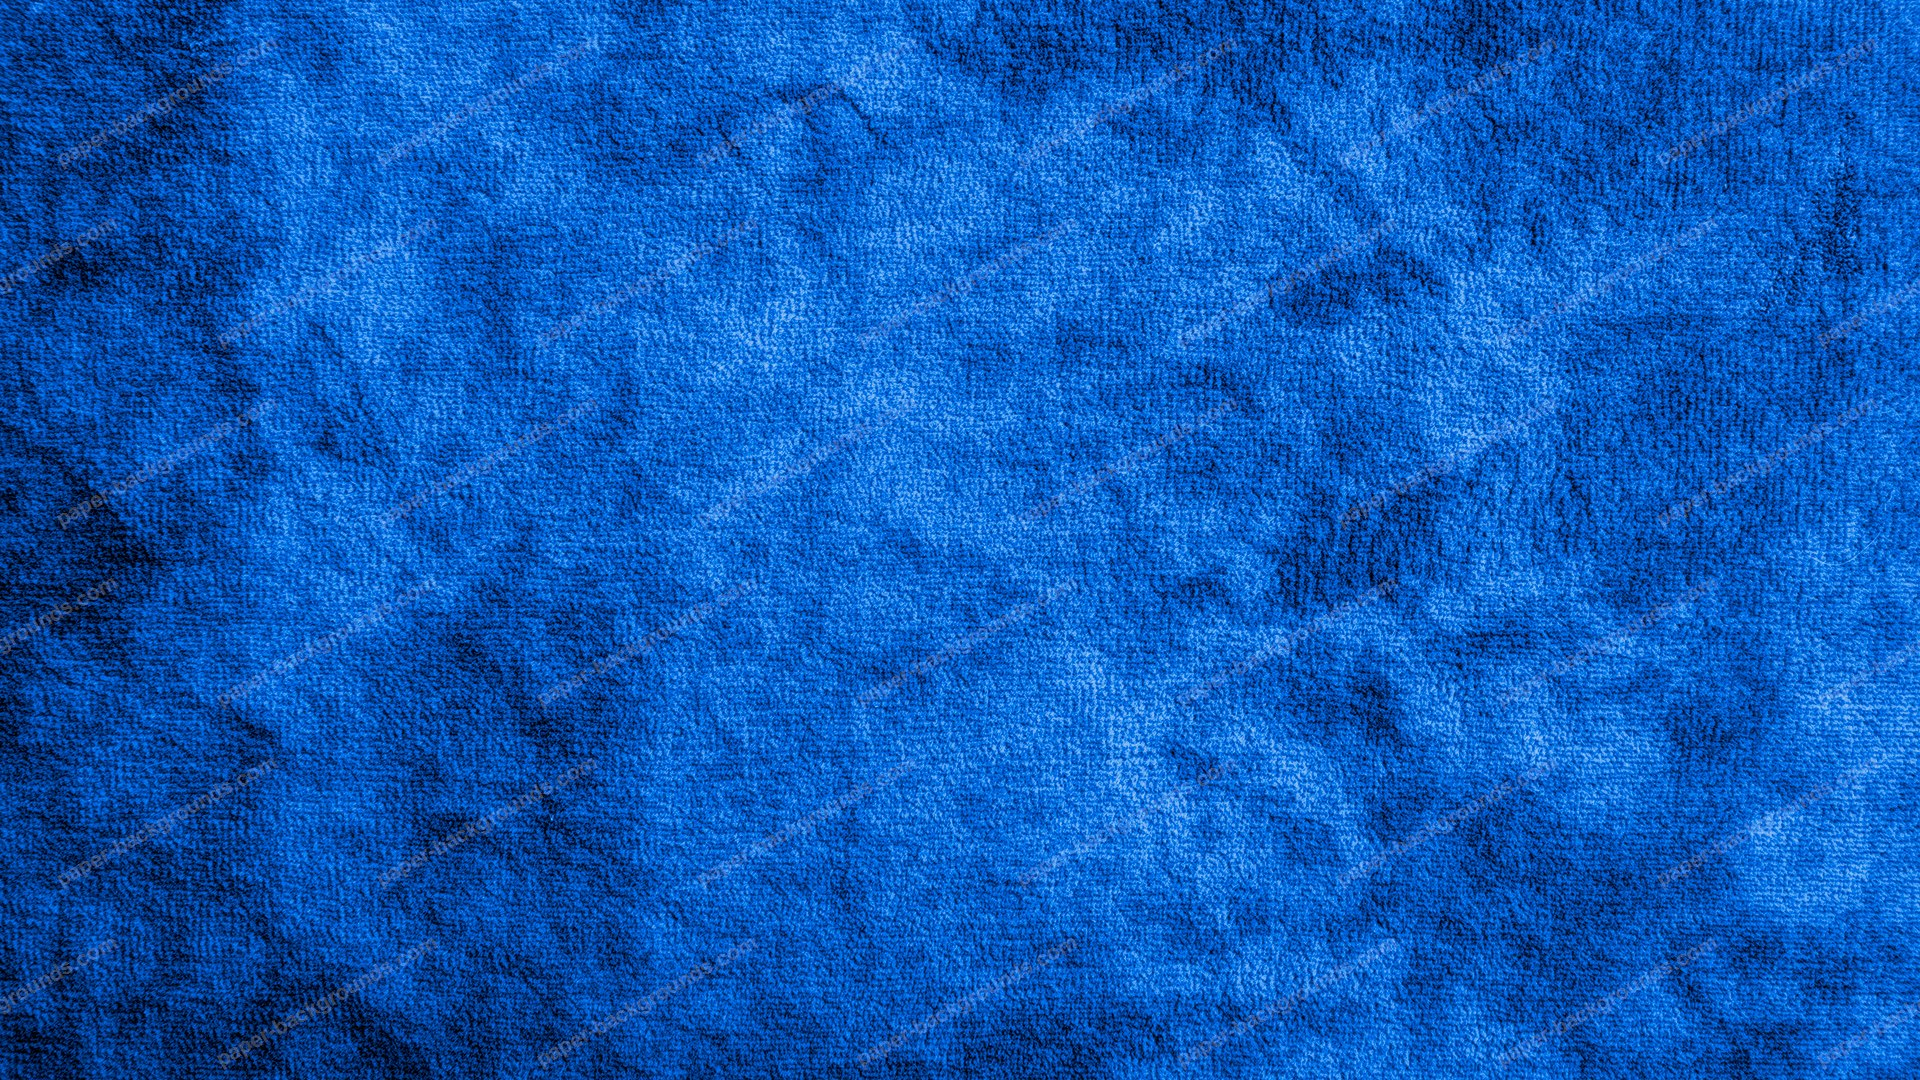 Blue Carpet Fine Fur Texture Paper Backgrounds 1920x1080